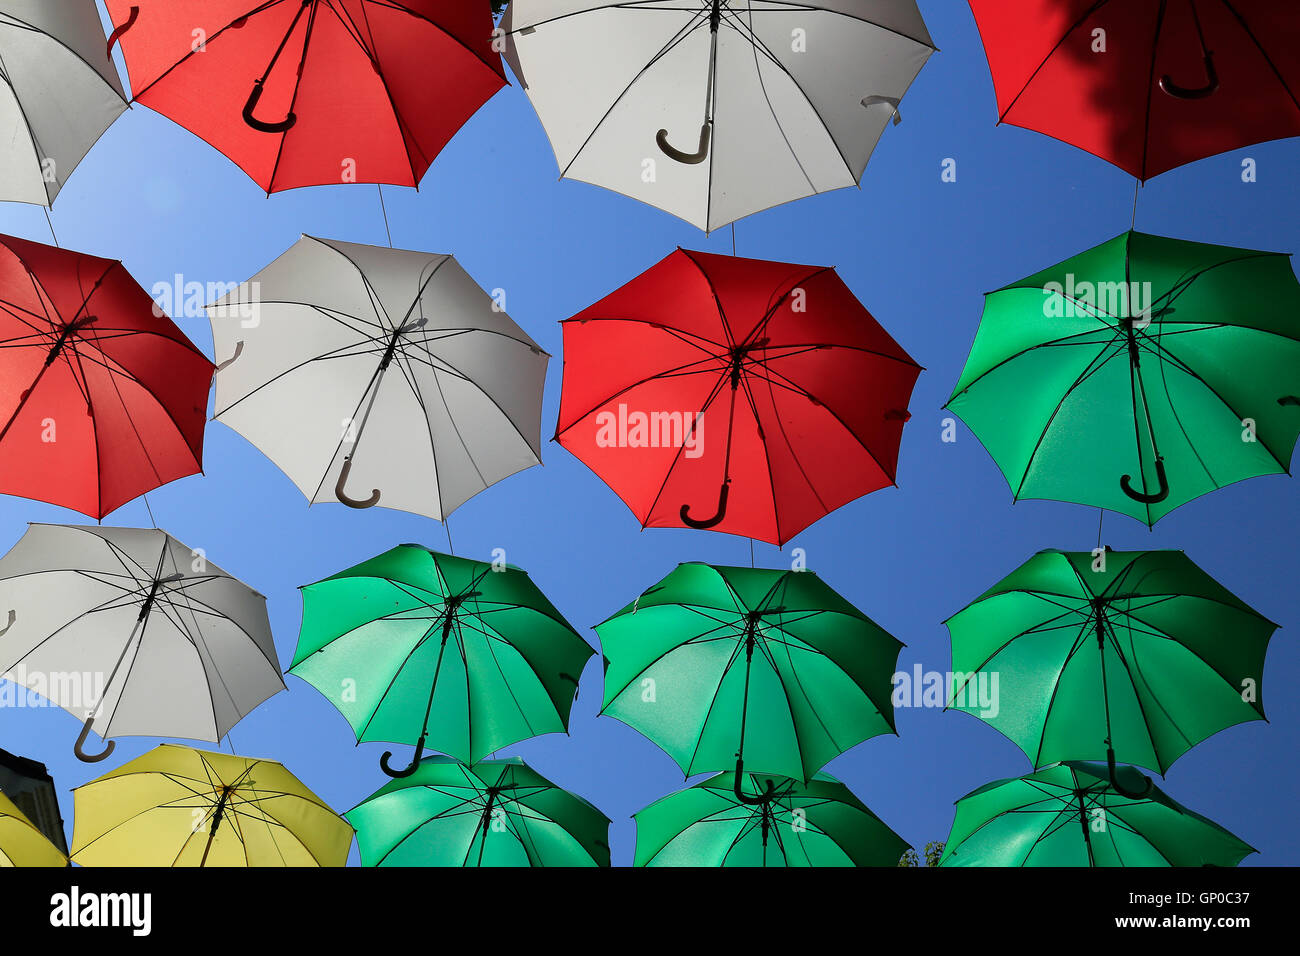 Umbrellas or parasols against a clear blue sky with hooked handles. - Stock Image